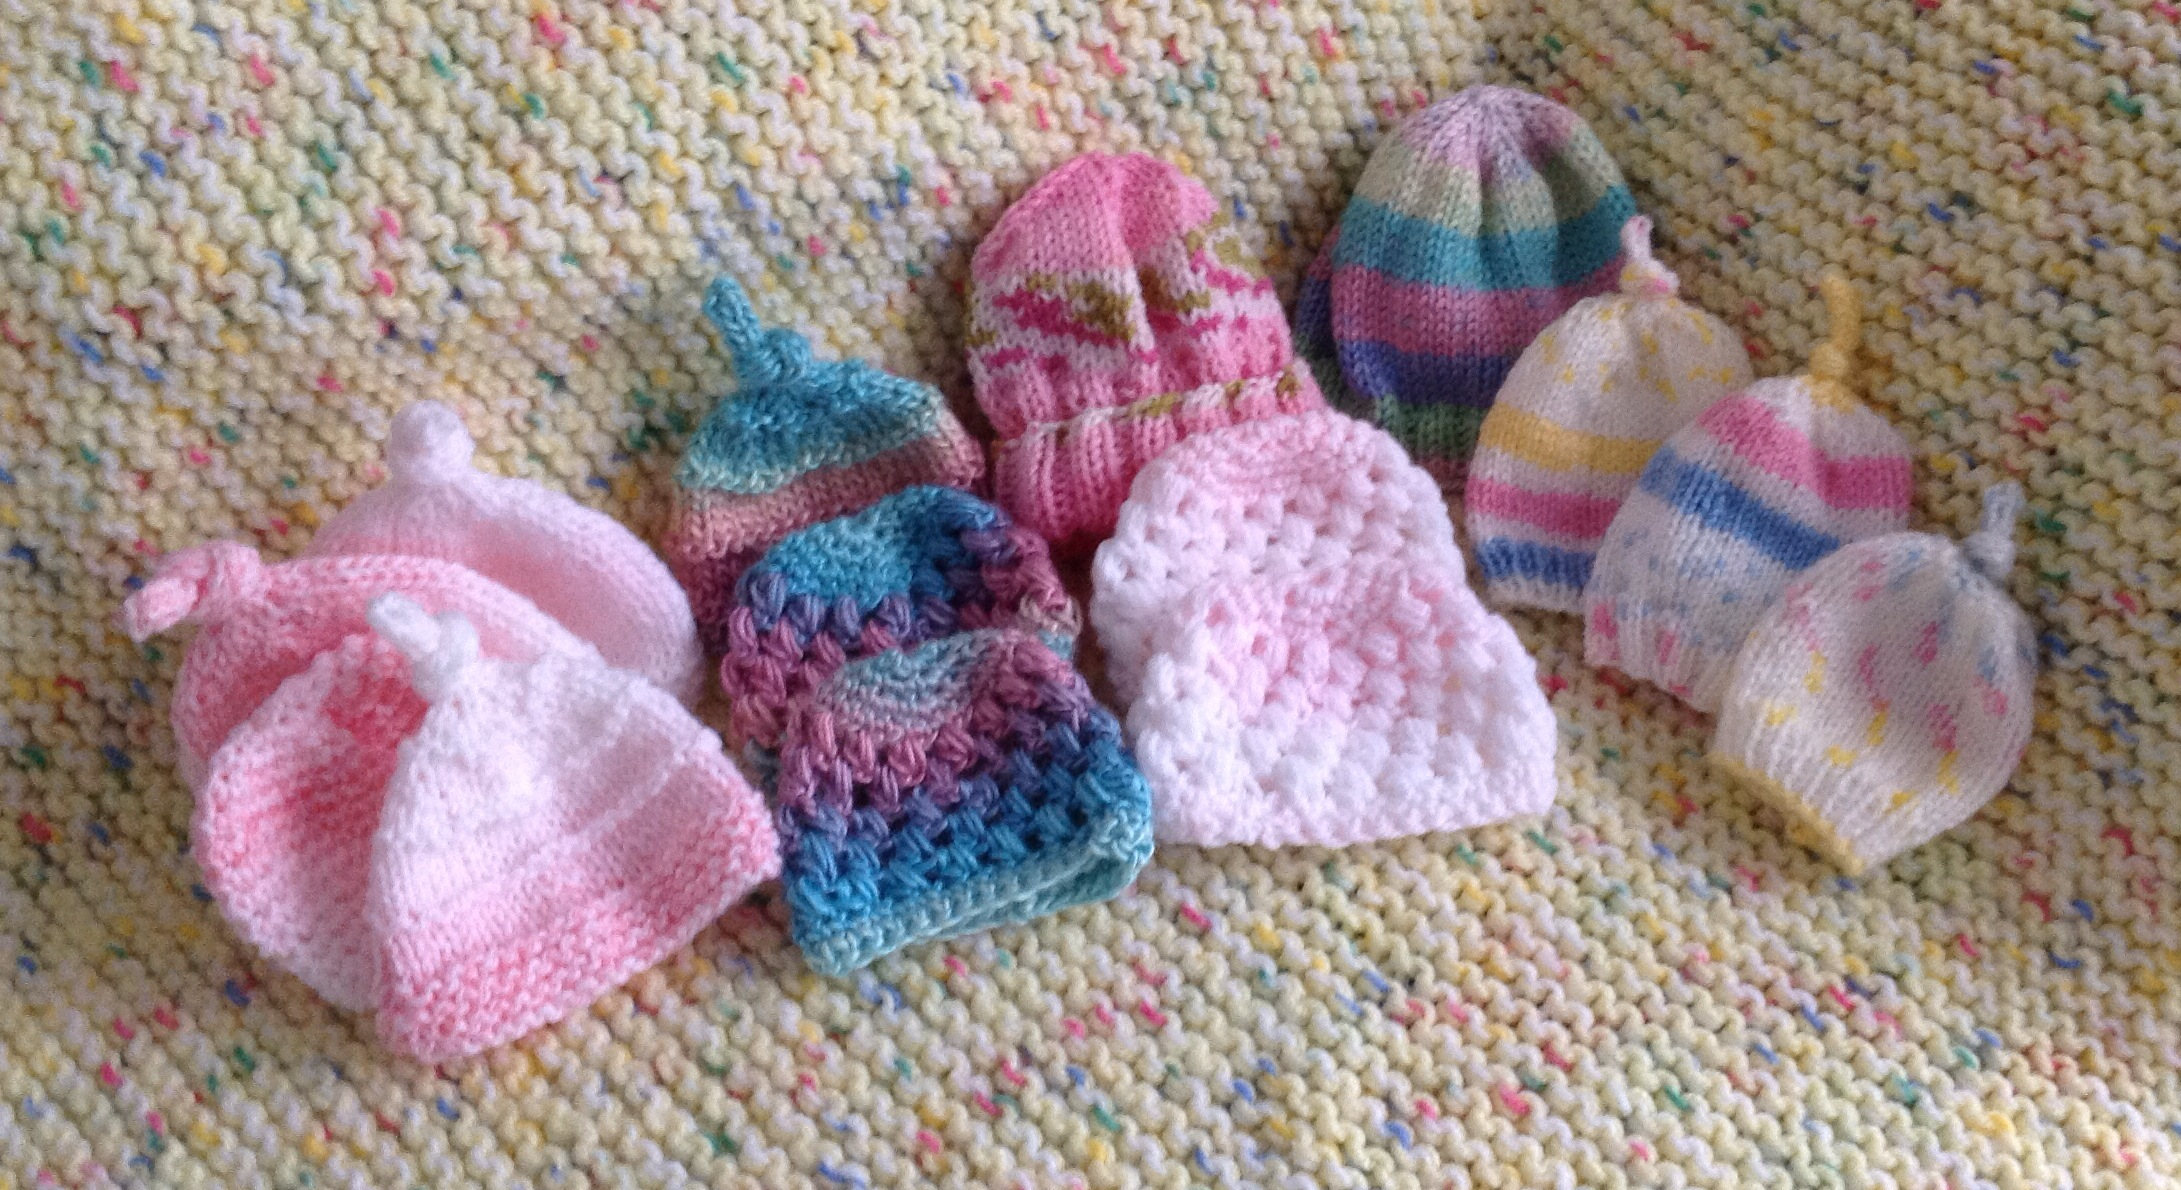 Knitting For Babies Charity : Charity knitting for premature babies creative and